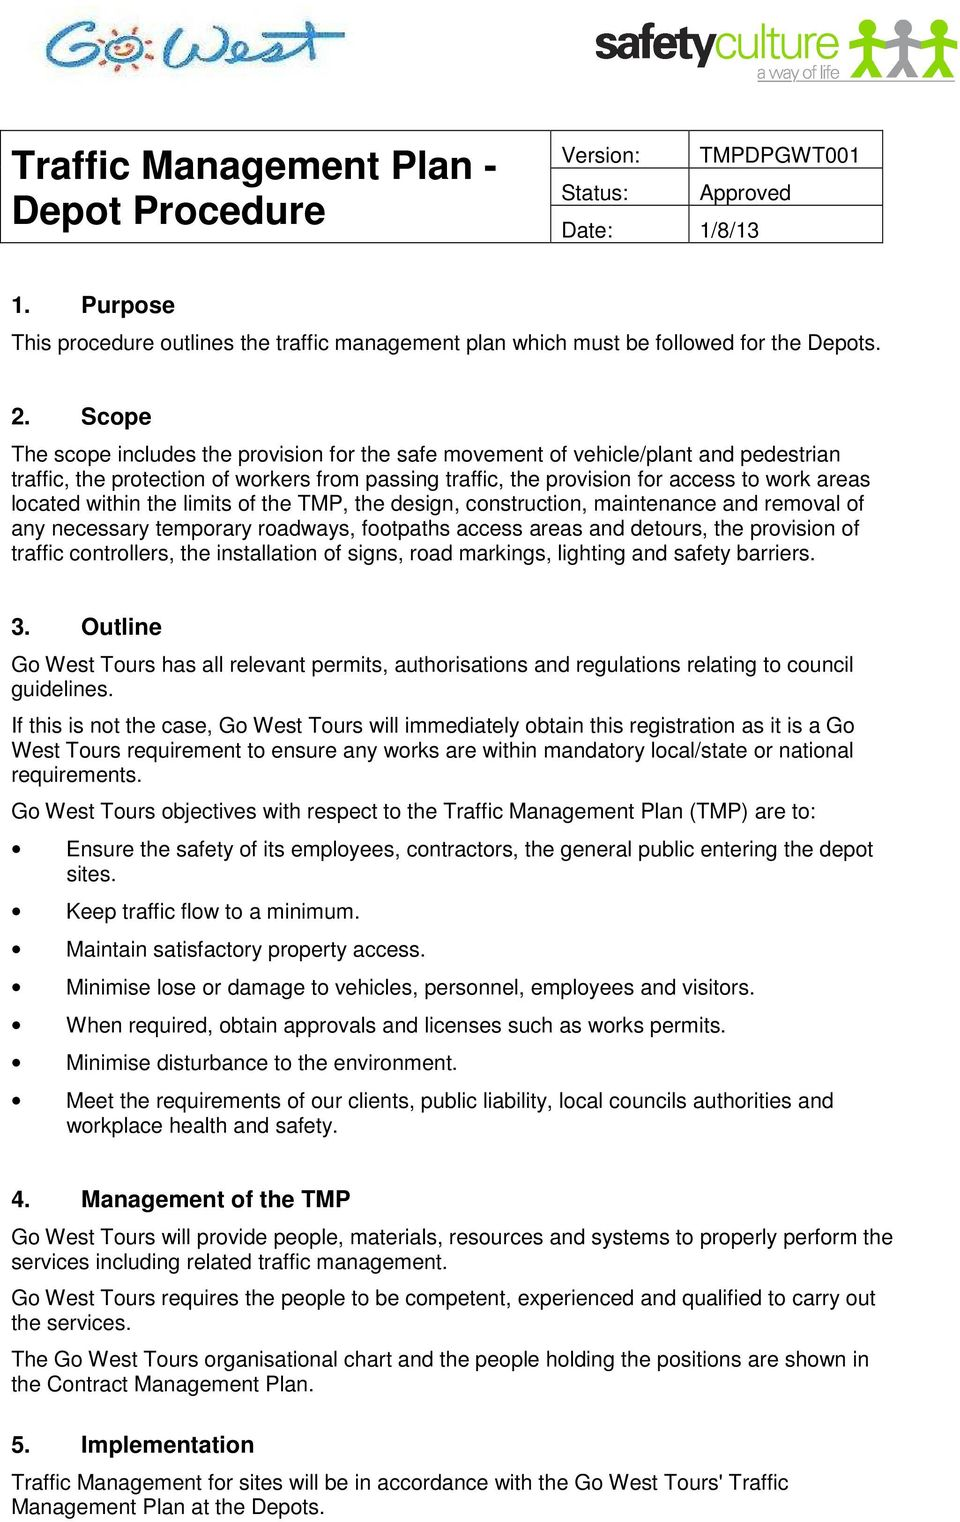 Traffic Management Plan Depot Procedure Pdf Free Download